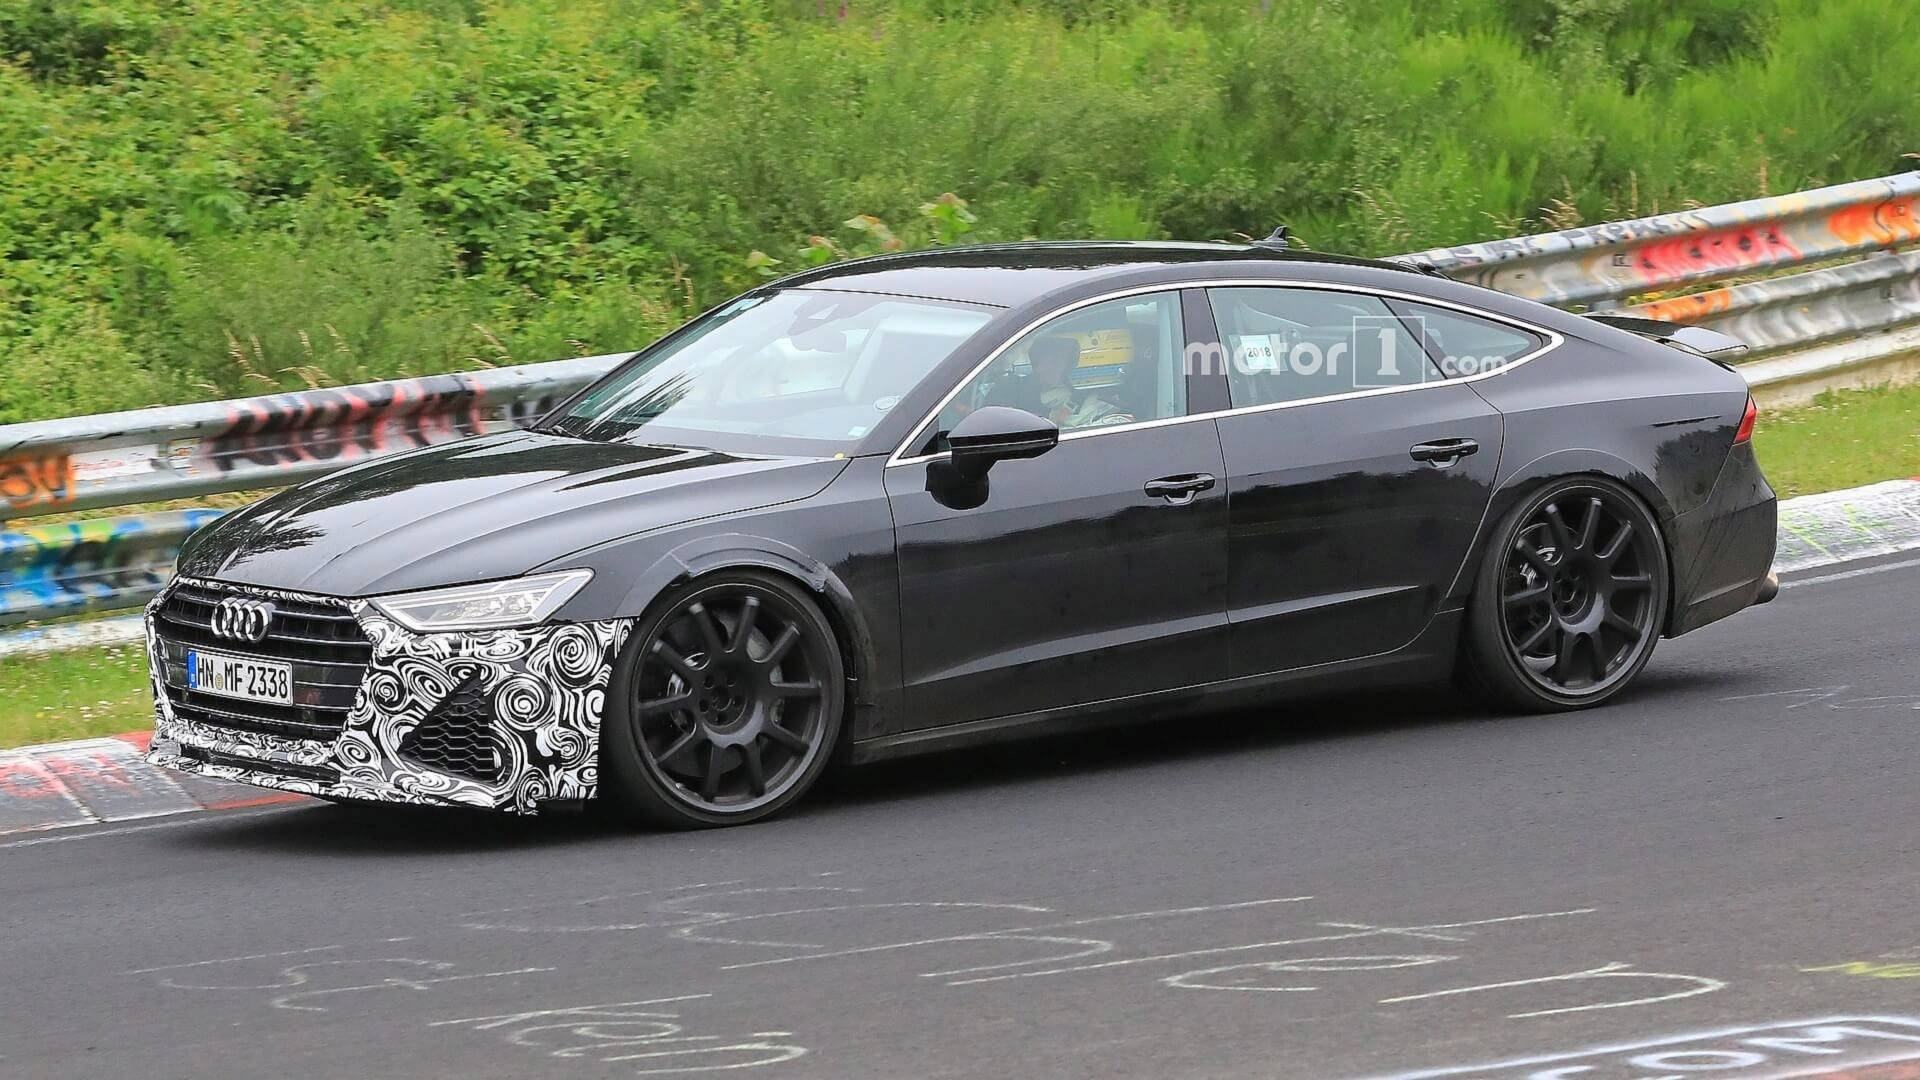 New Audi RS Sportback Spied Looking Fierce At The Nurburgring - Rs7 audi